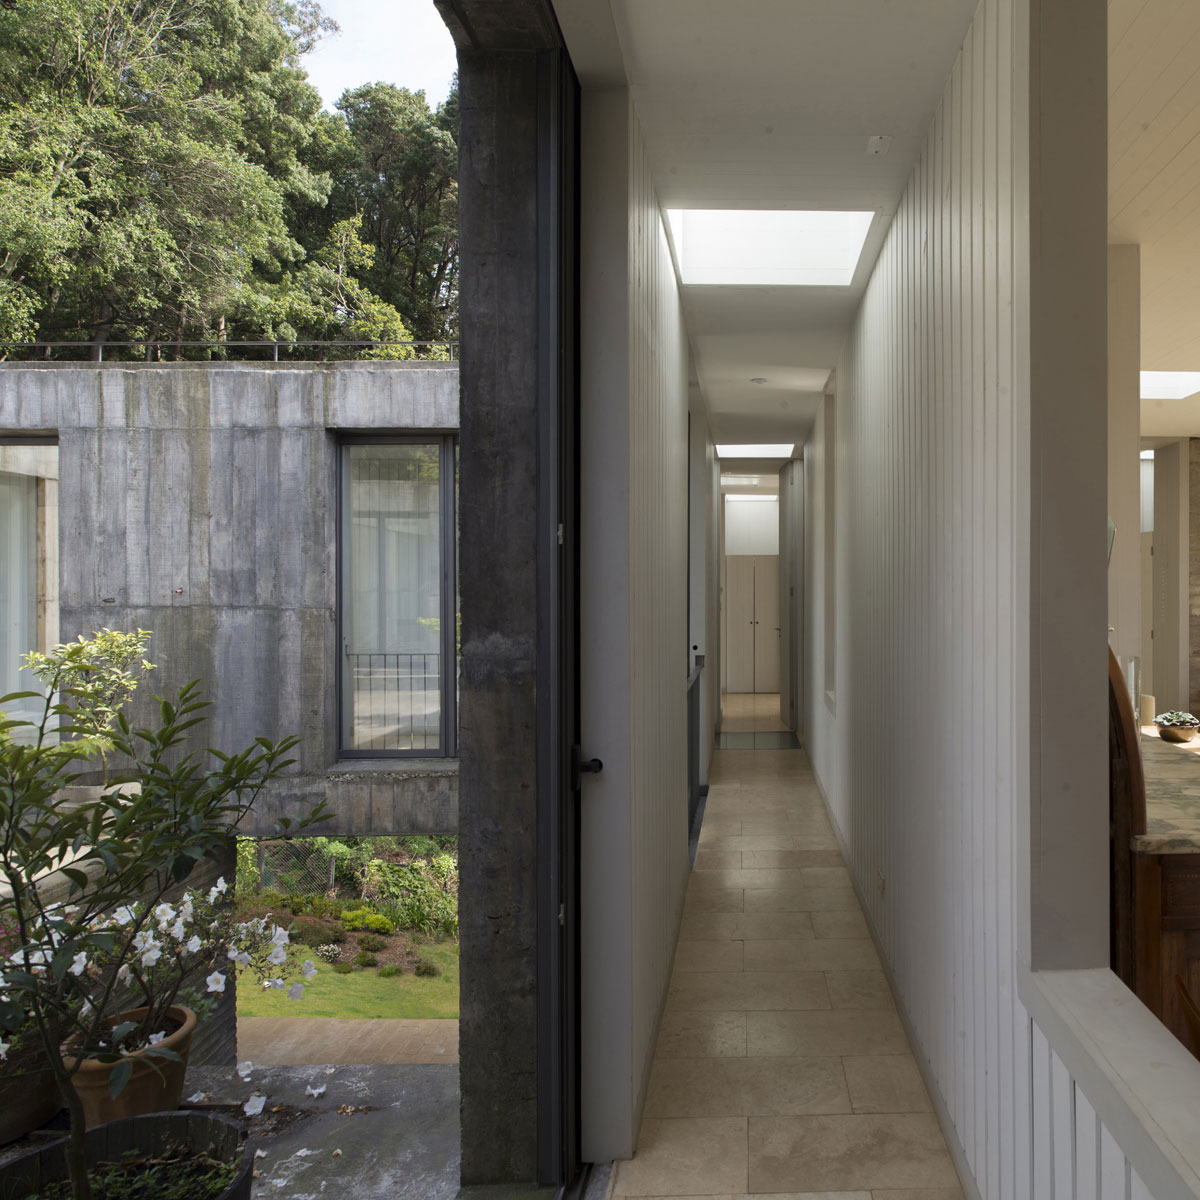 Guna House Located Between a Steeply Sloping Hillside and a Wood of Eucalyptus Trees by Pezo von Ellrichshausen-07